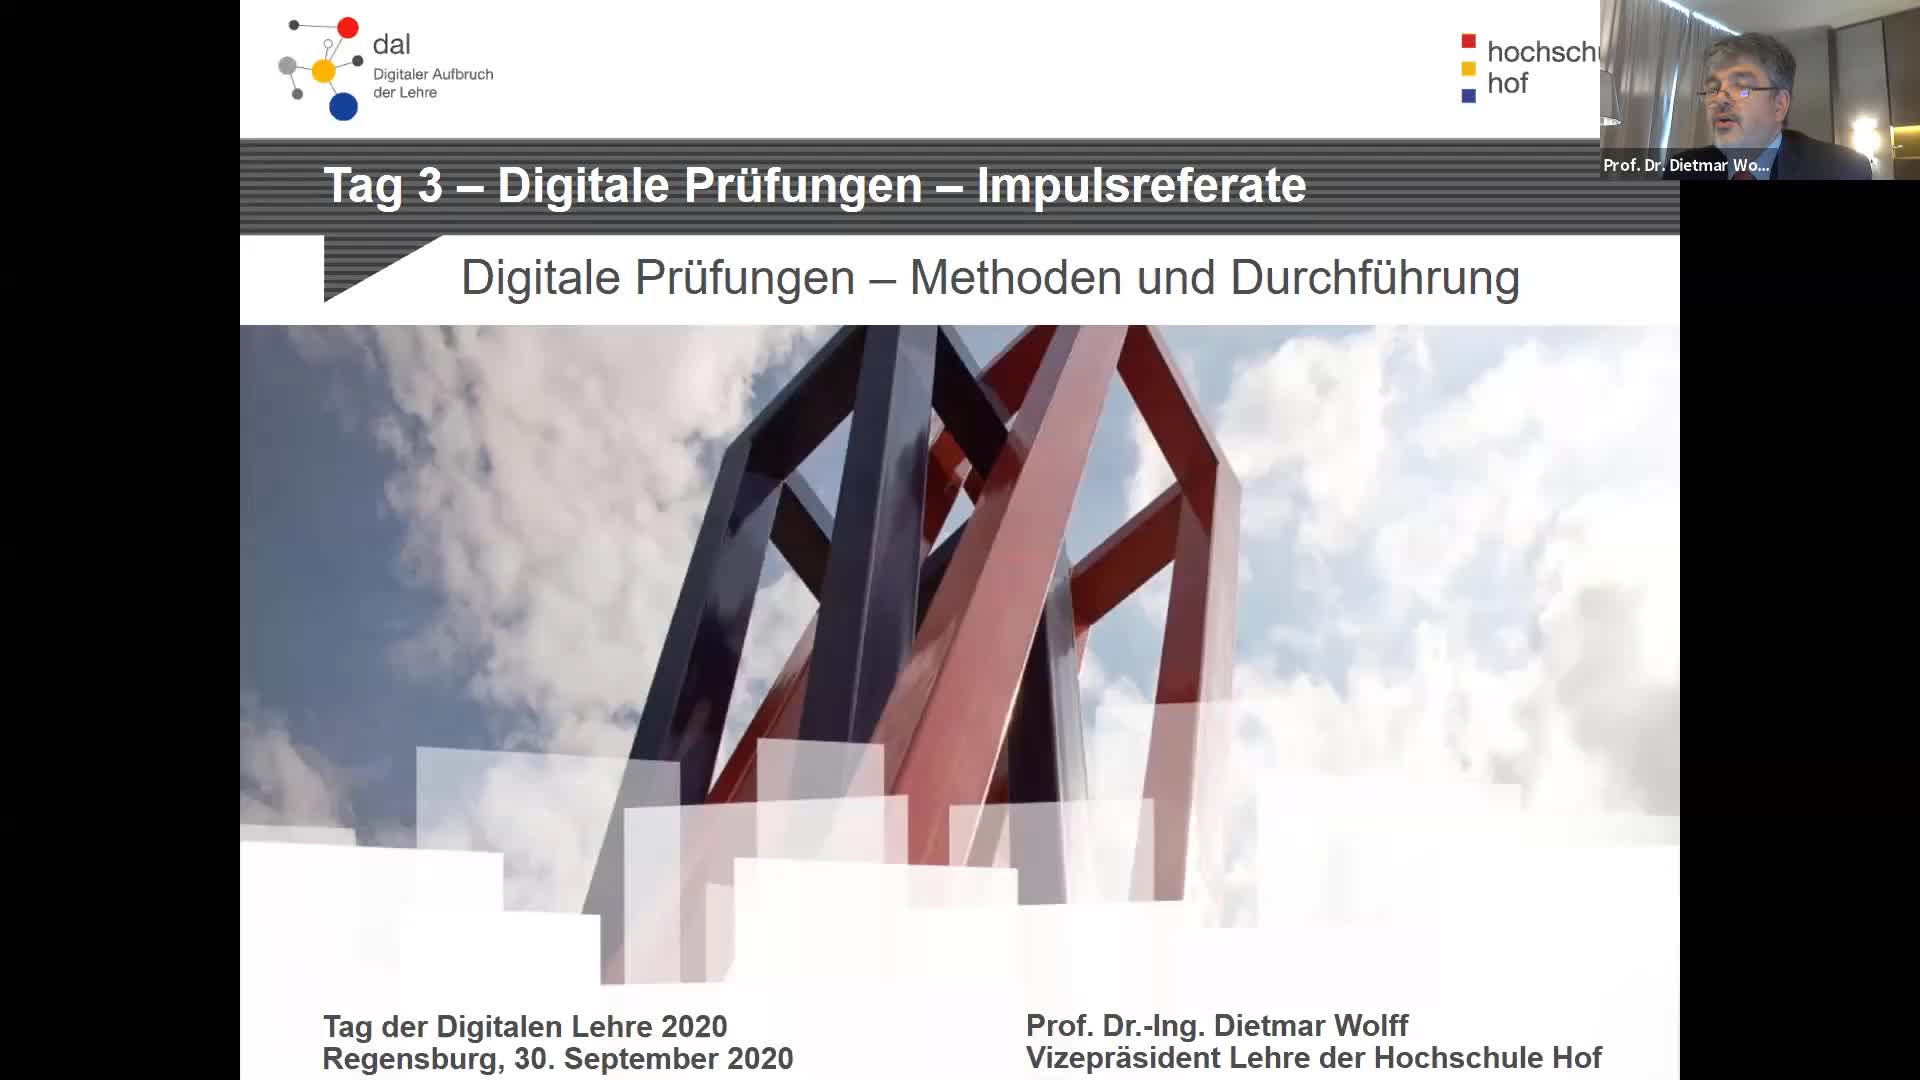 Tag der digitalen Lehre 2020 - Tag 3: Impulsreferate (Livestream | 30.09.2020)